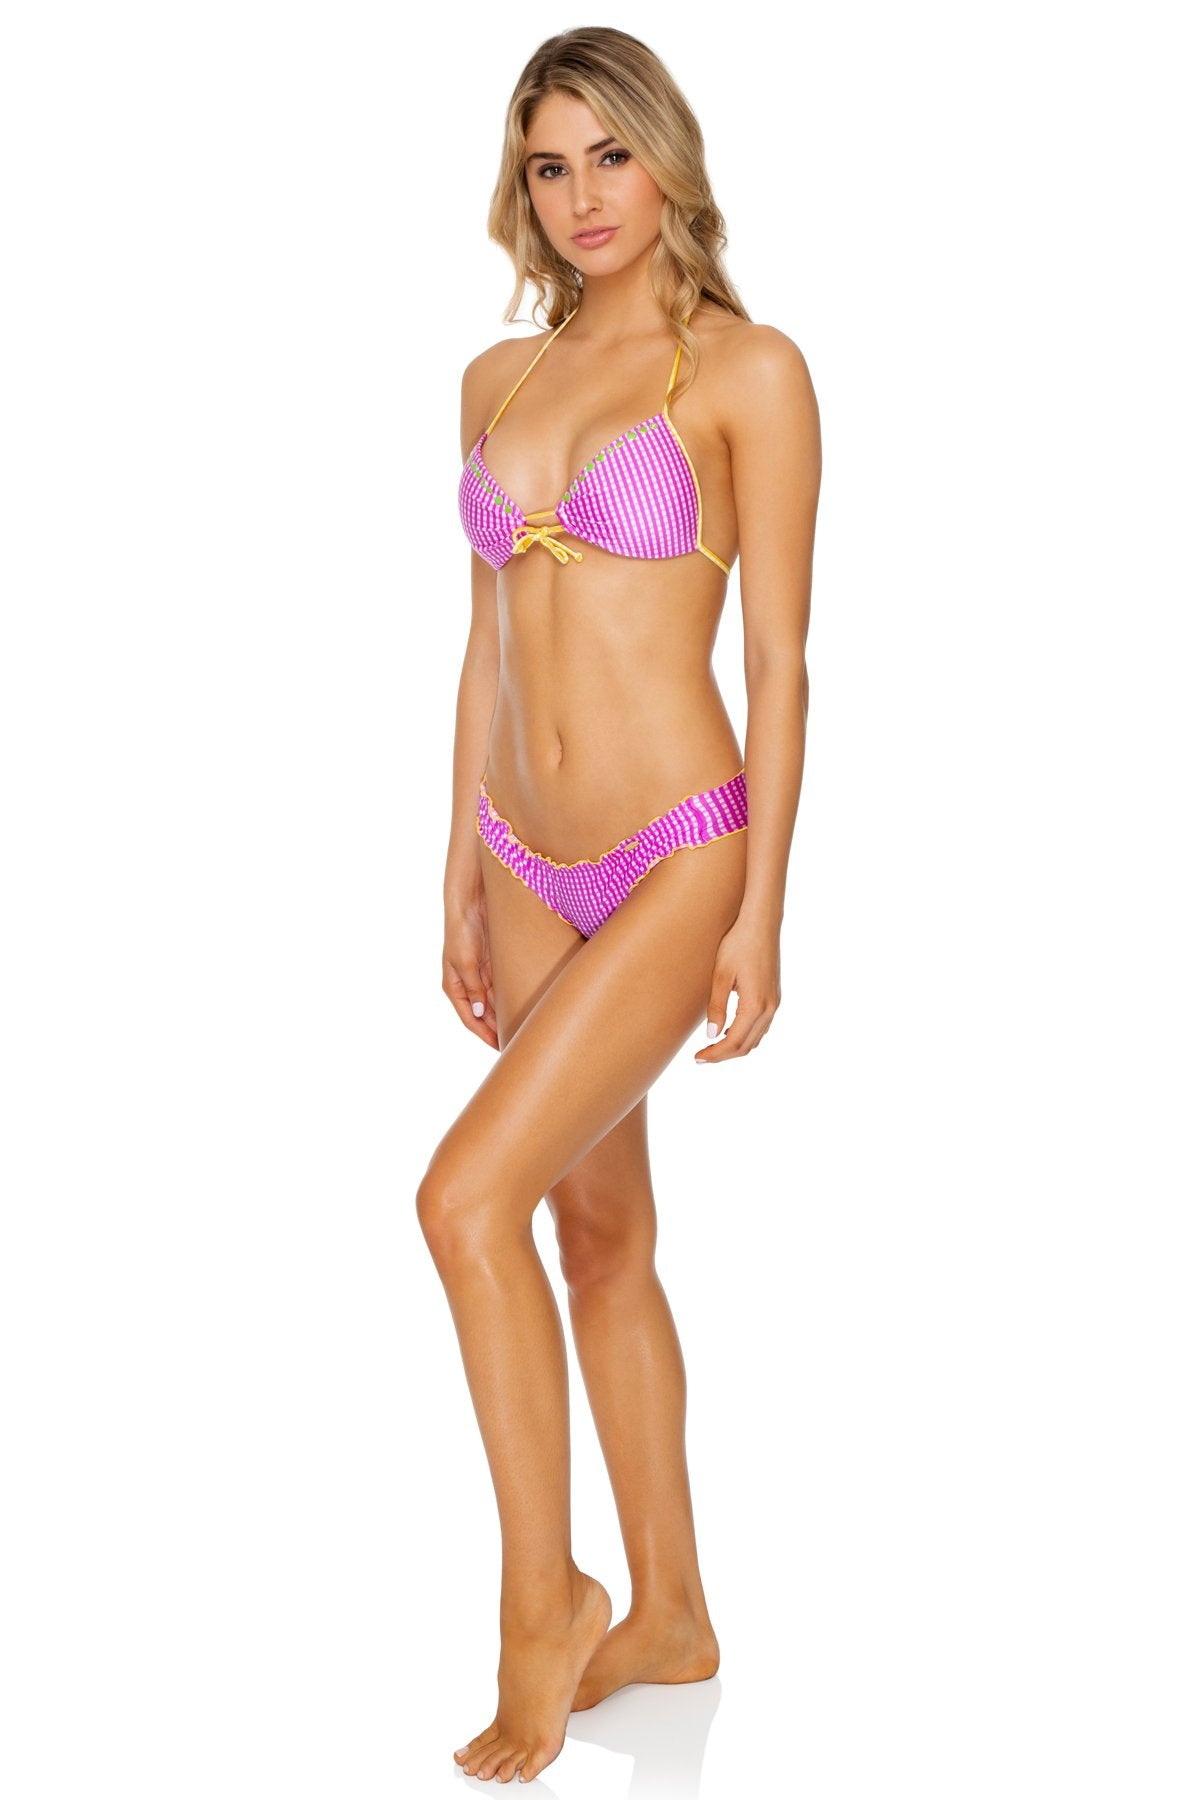 CORAZON LATINO - Molded Push Up Bandeau Halter & Wavey Ruched Back Bottom • Berry